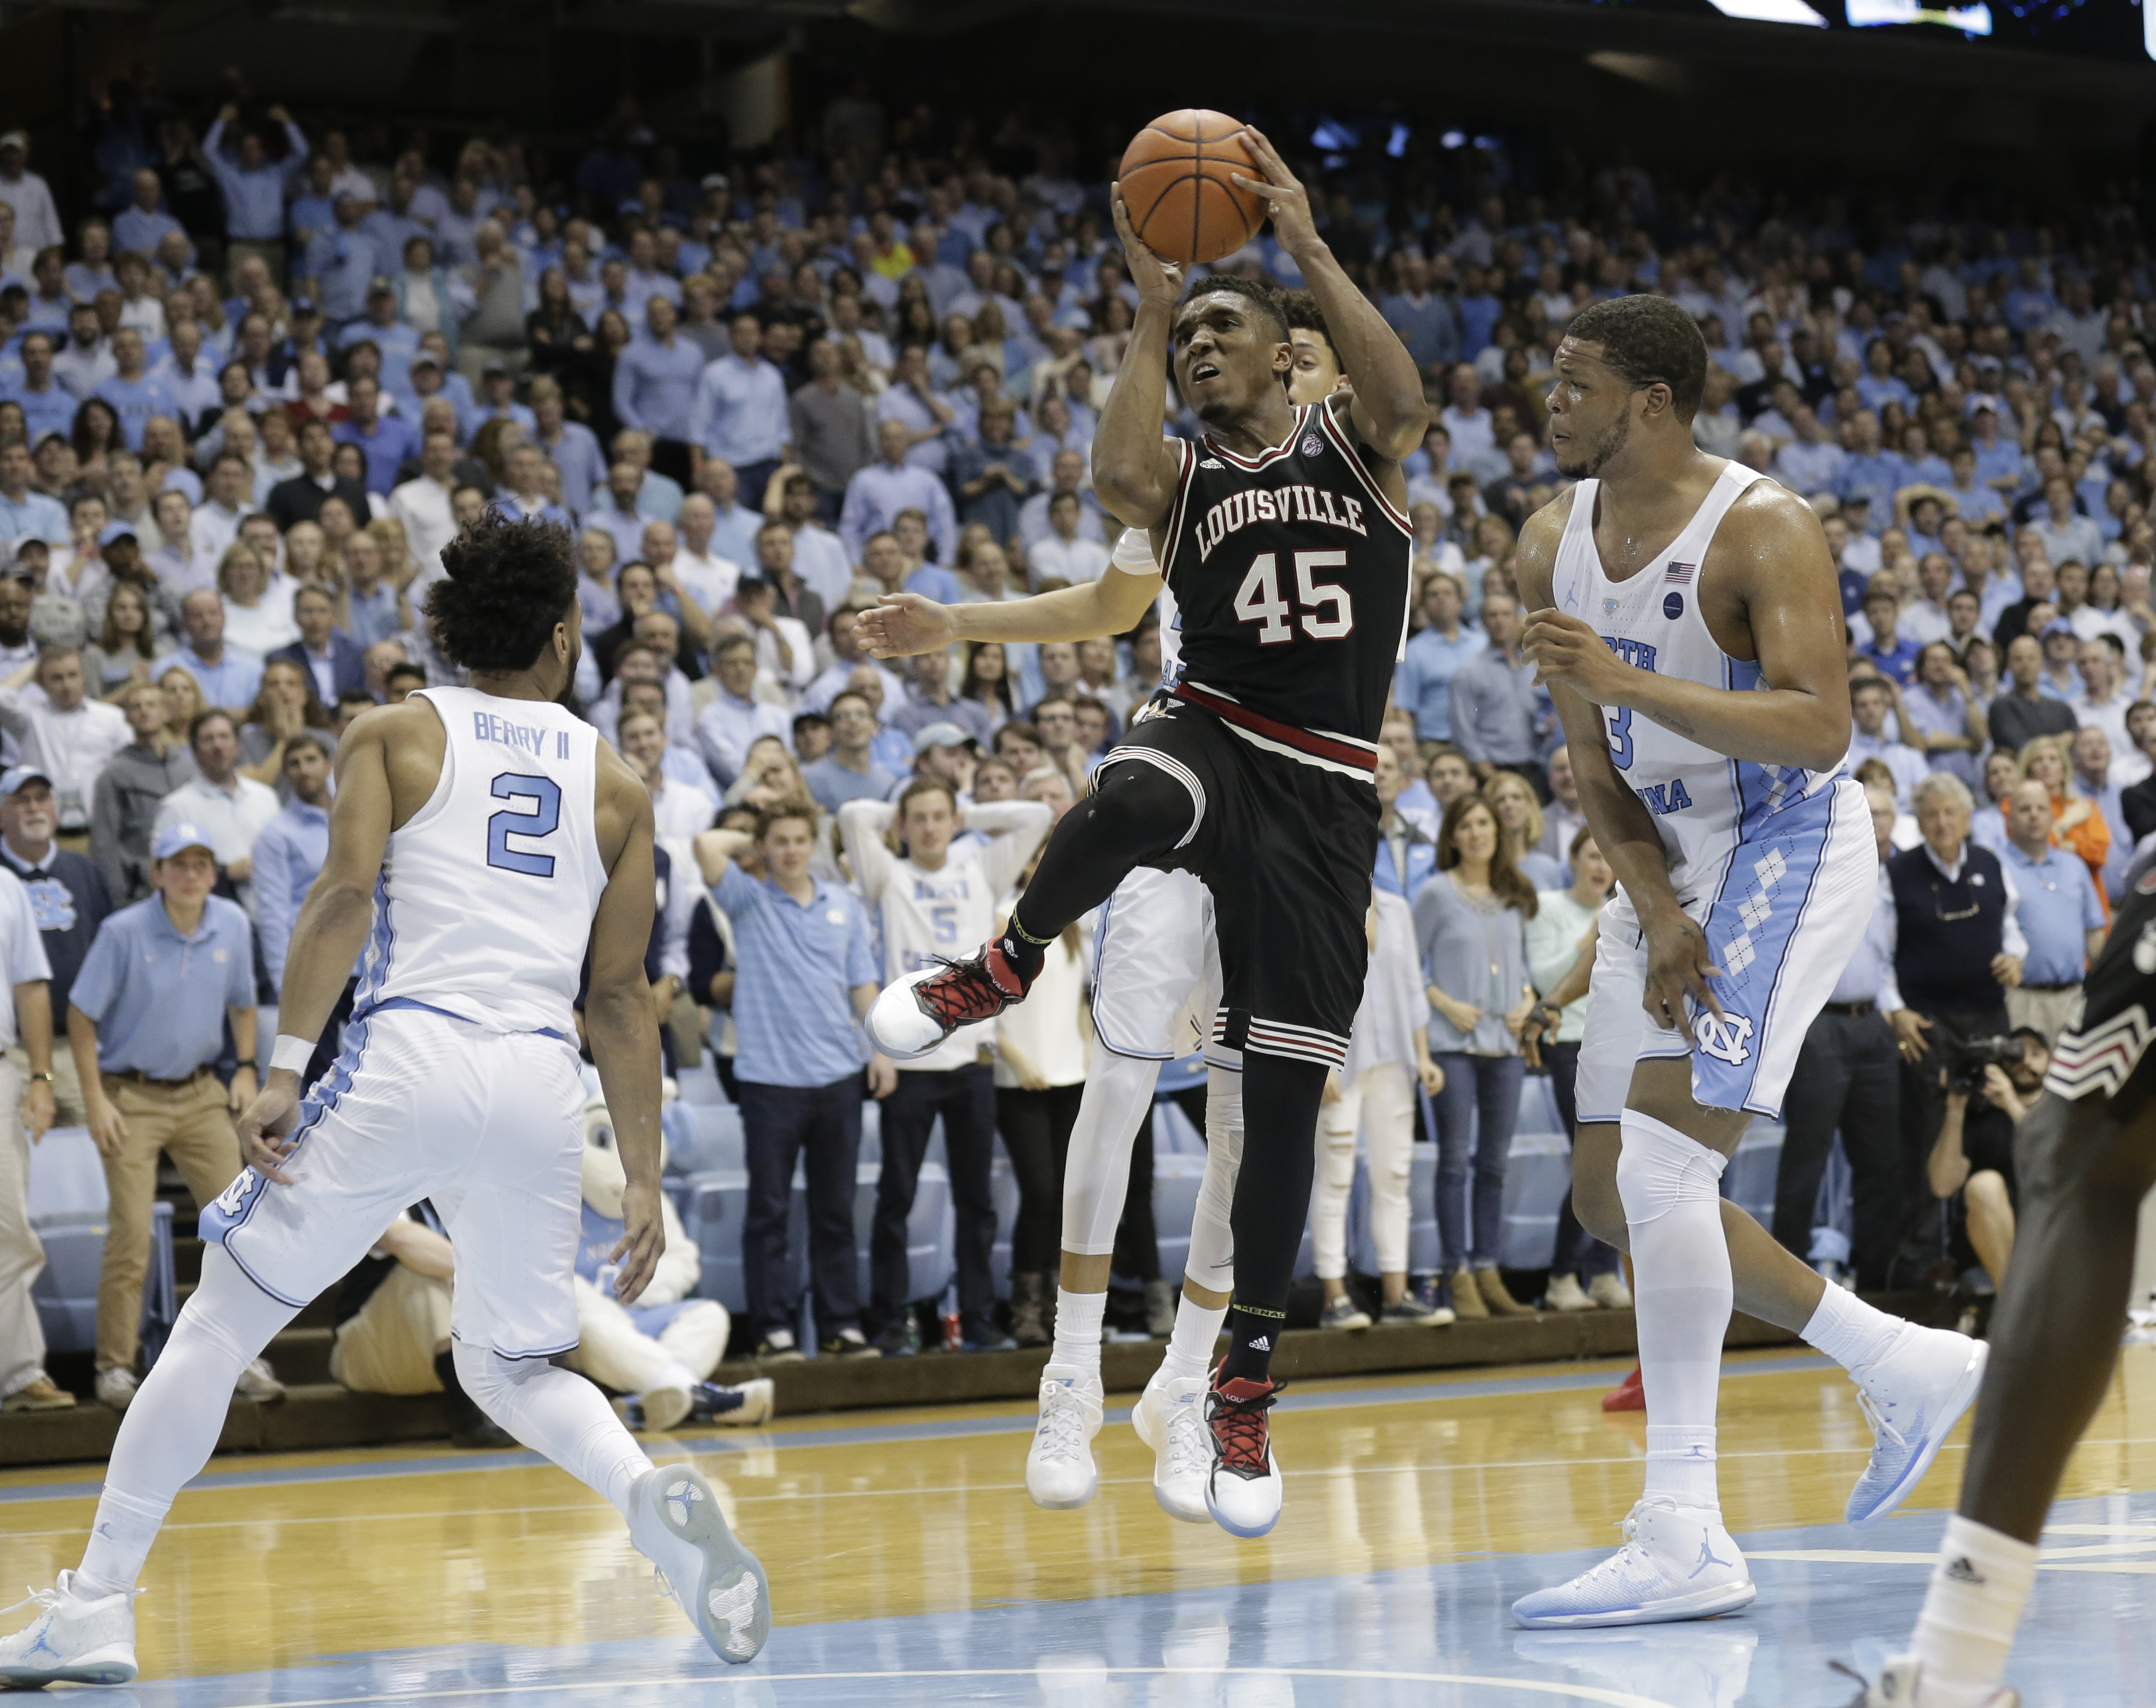 North Carolina's Joel Berry II (2) and Kennedy Meeks, right defend against Louisville's Donovan Mitchell (45) during the second half of an NCAA college basketball game in Chapel Hill, N.C., Wednesday, Feb. 22, 2017. North Carolina won 74-63. (AP Photo/Gerry Broome)